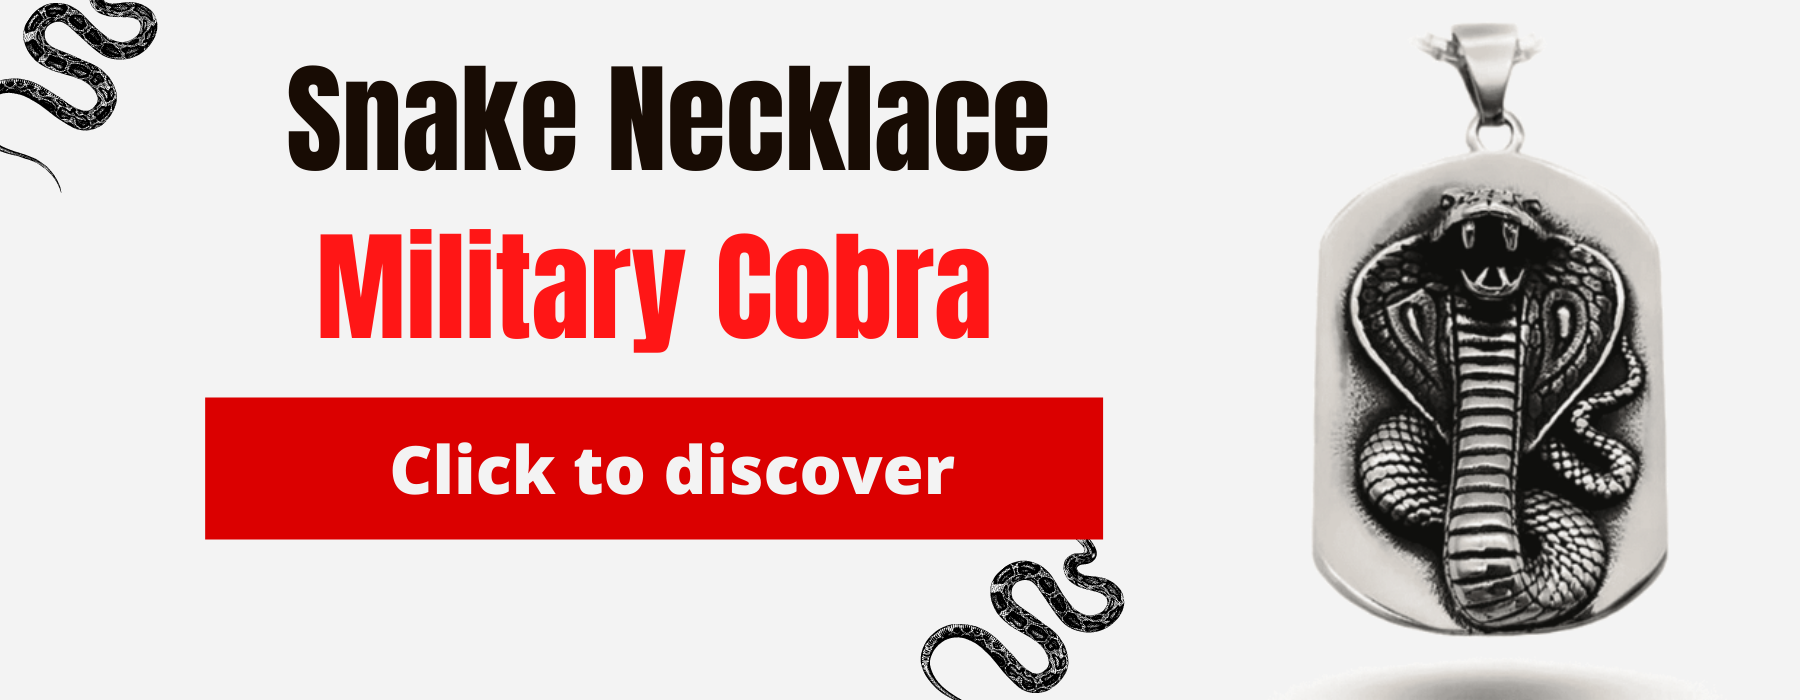 Military Cobra Necklace